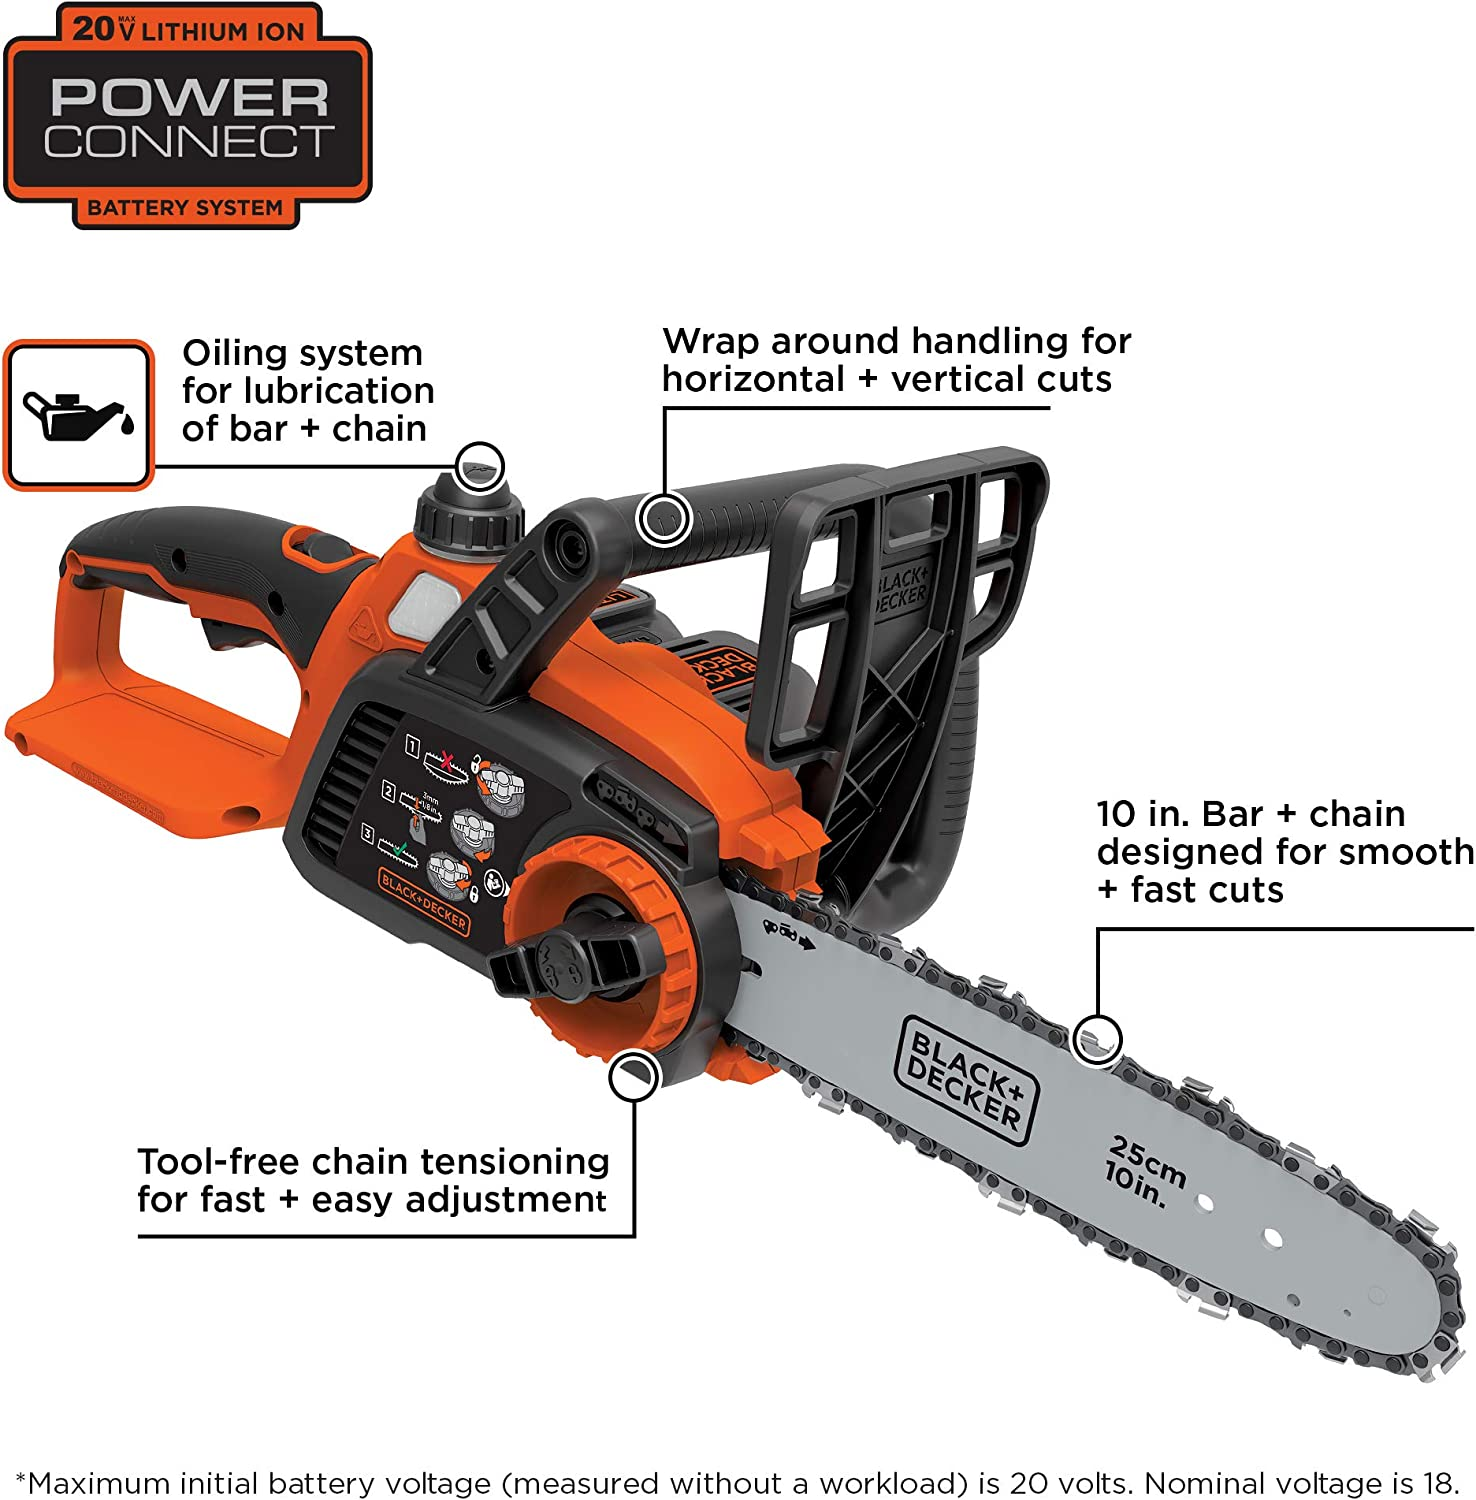 BLACK+DECKER LCS1020 Chainsaws product image 2